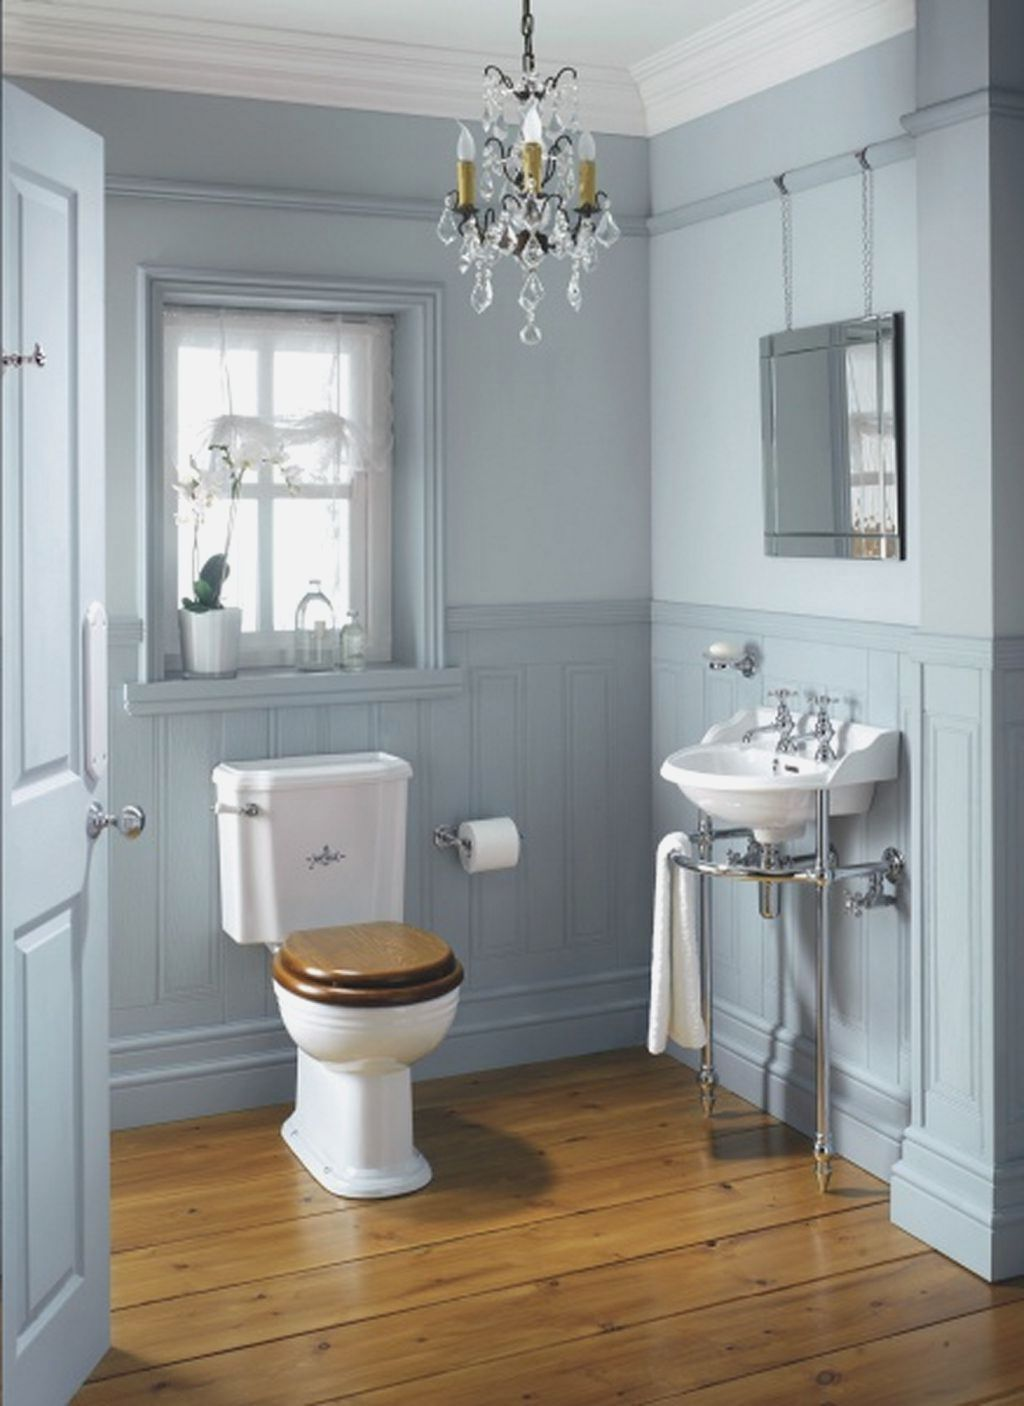 edwardian bathroom design ideas luxurious bathroom decorating Picture HD Wallpapers Bathjpg 10241406 edwardian bathroom design ideas luxurious bathroom decorating